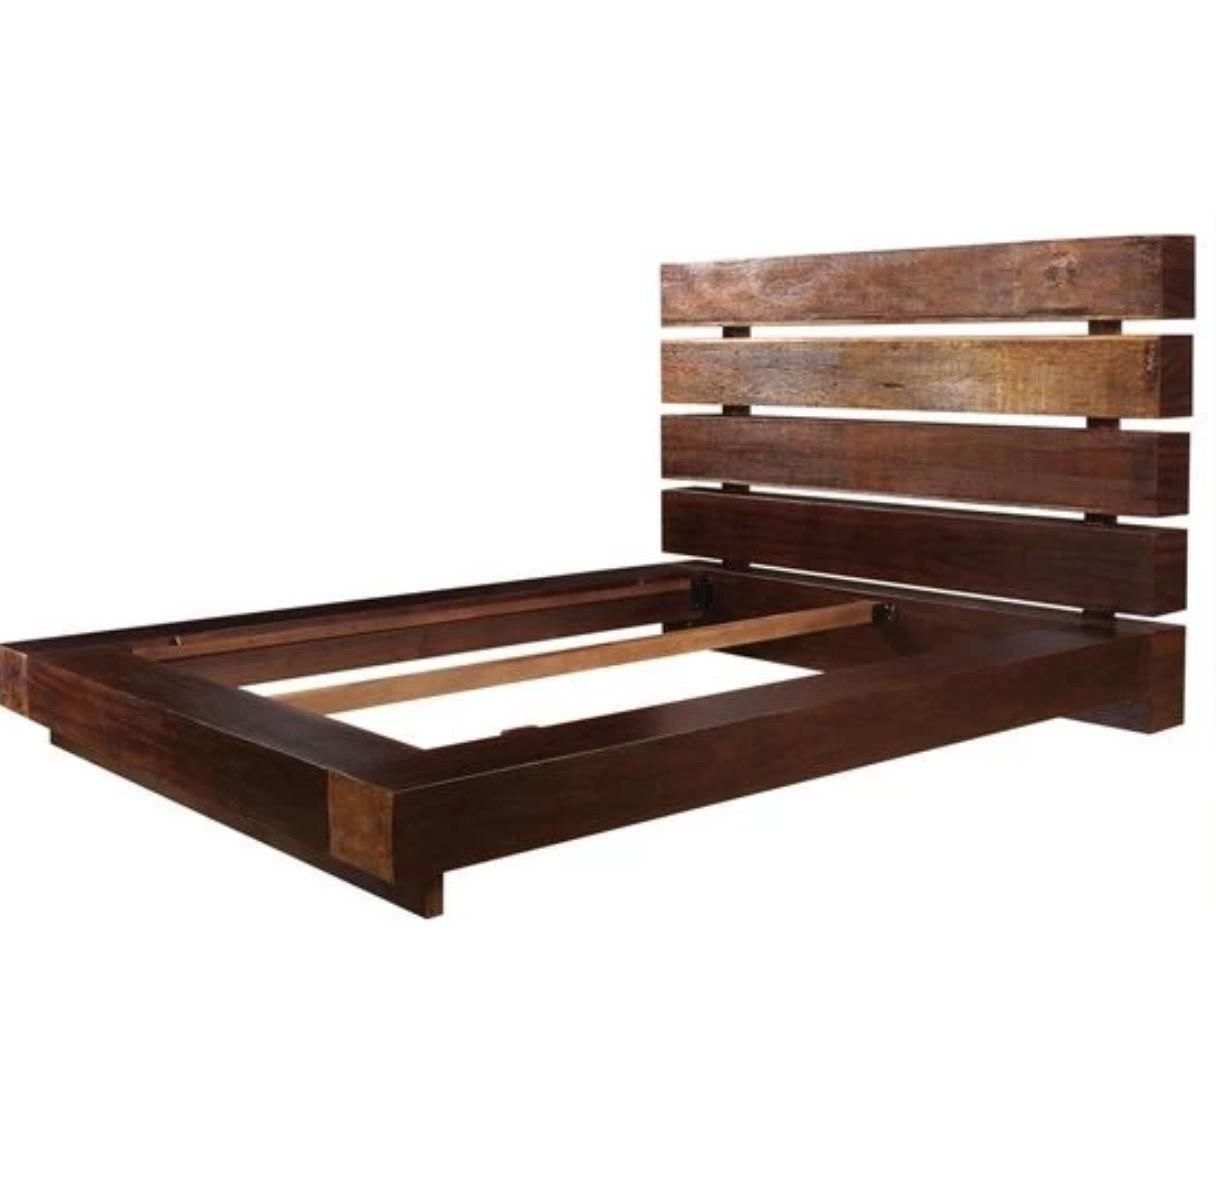 Reclaimed Queen Platform Bed By Four Hands King Platform Bed